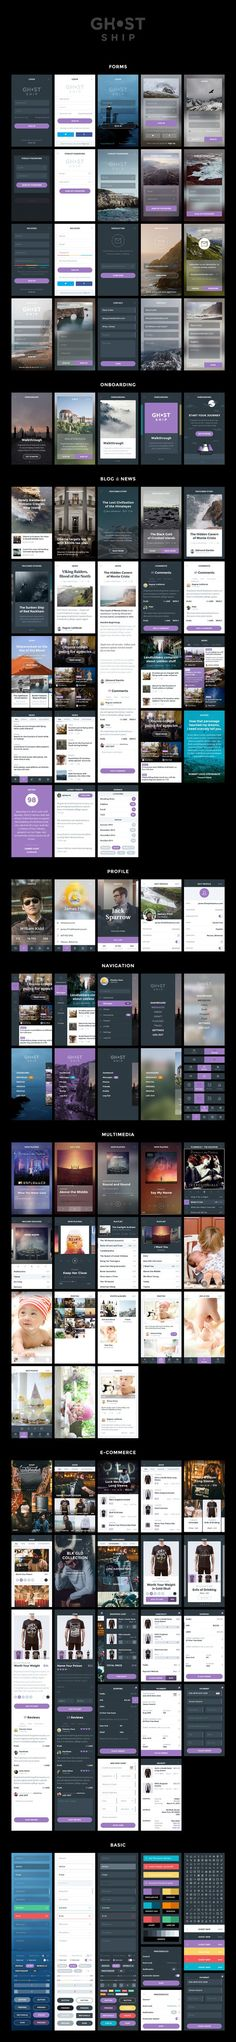 Ghost Ship Mobile UI Kit Published by Maan Ali: